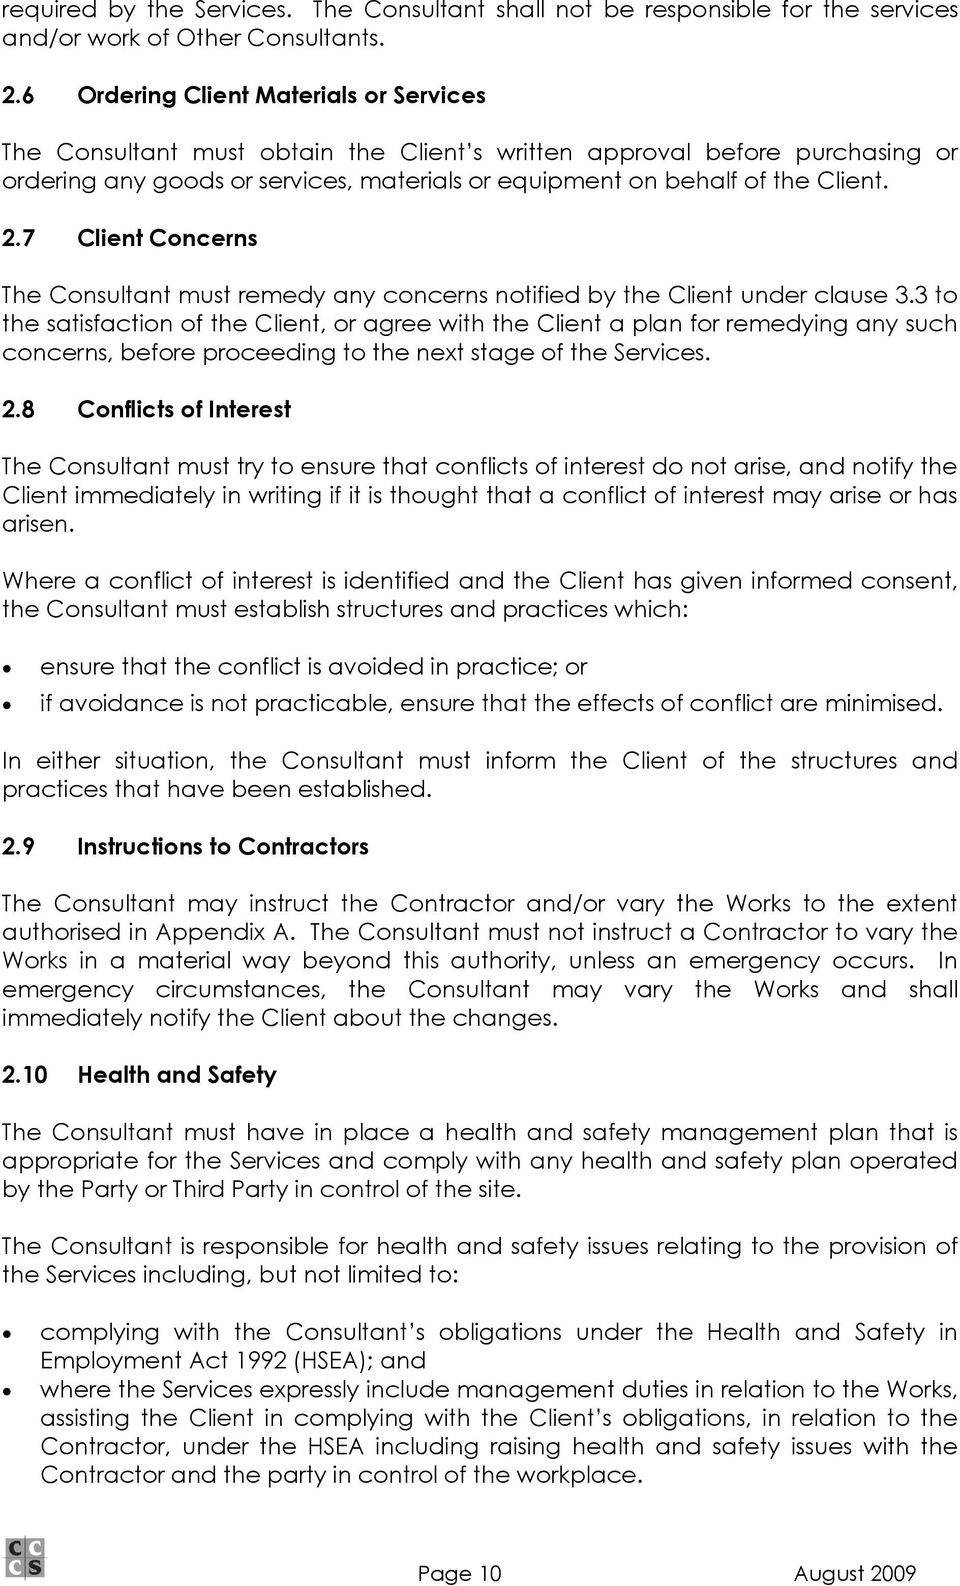 7 Client Concerns The Consultant must remedy any concerns notified by the Client under clause 3.